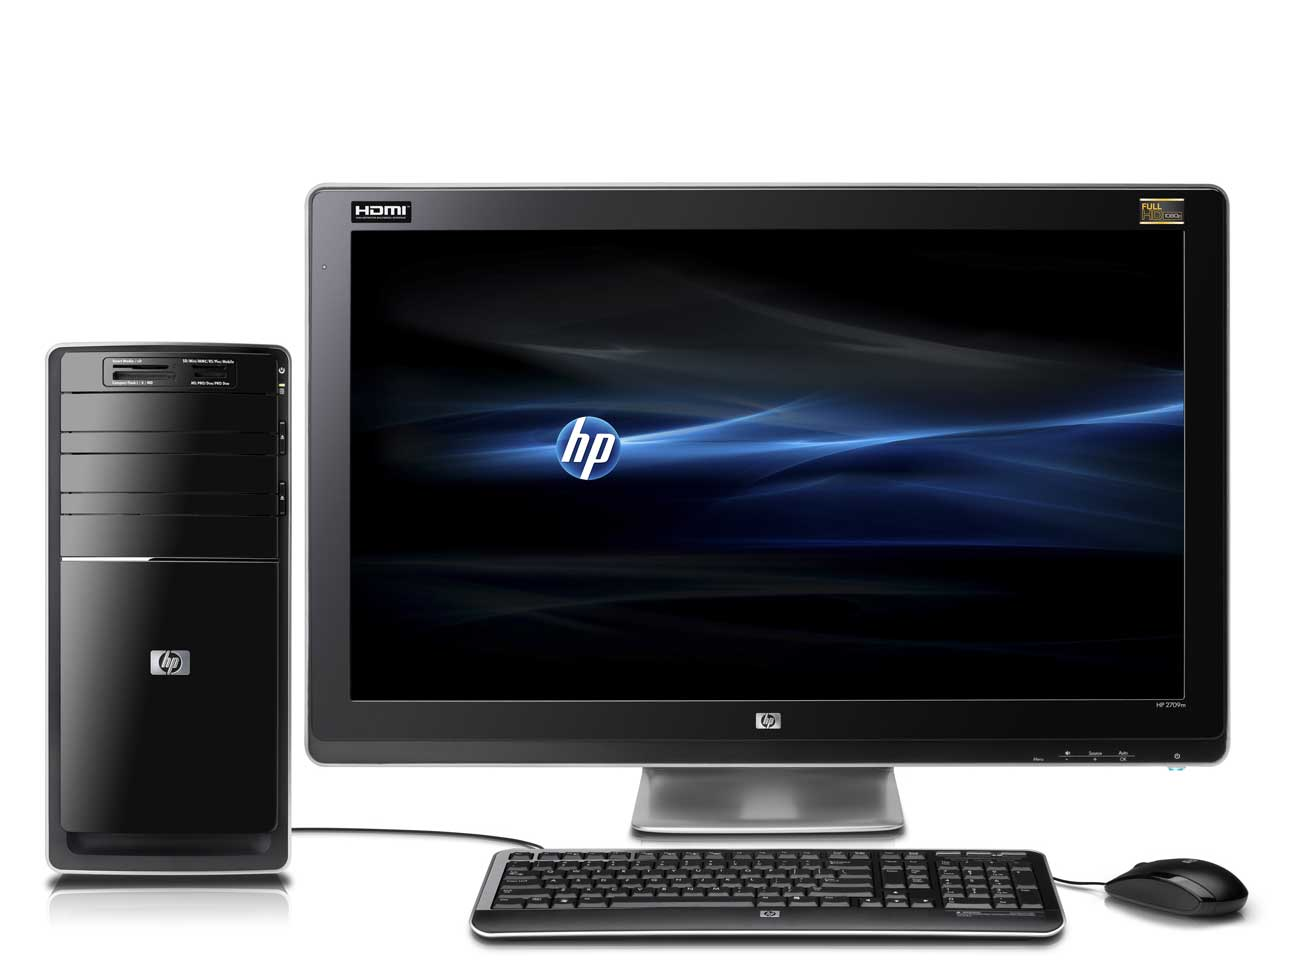 HP Pavilion P6340F Desktop PC (Black)